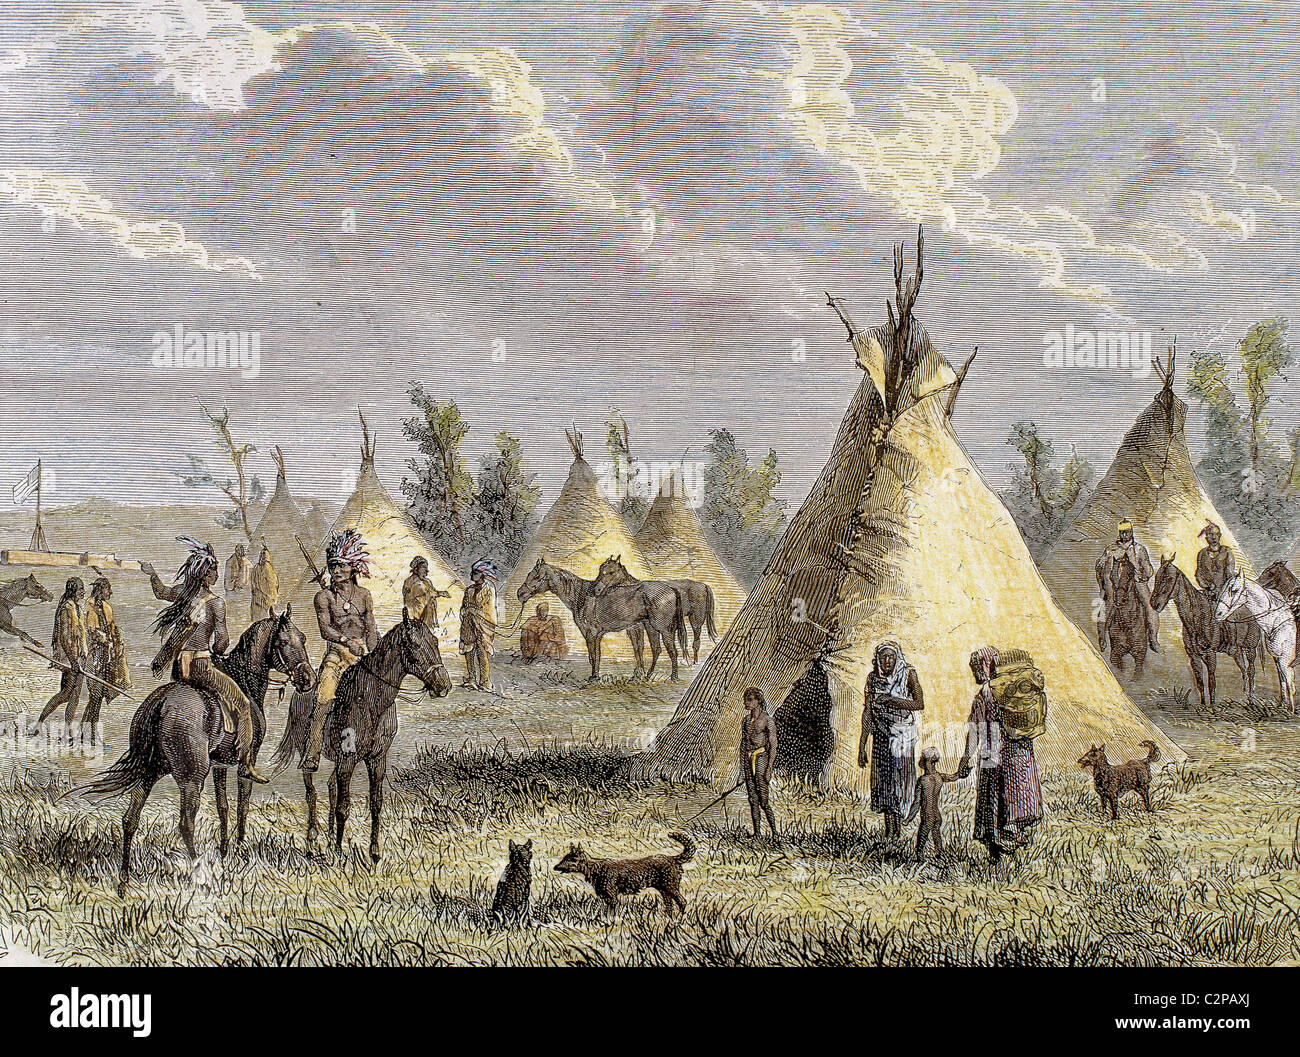 Sioux Camp near Fort Laramie. Colored engraving, 1884. - Stock Image